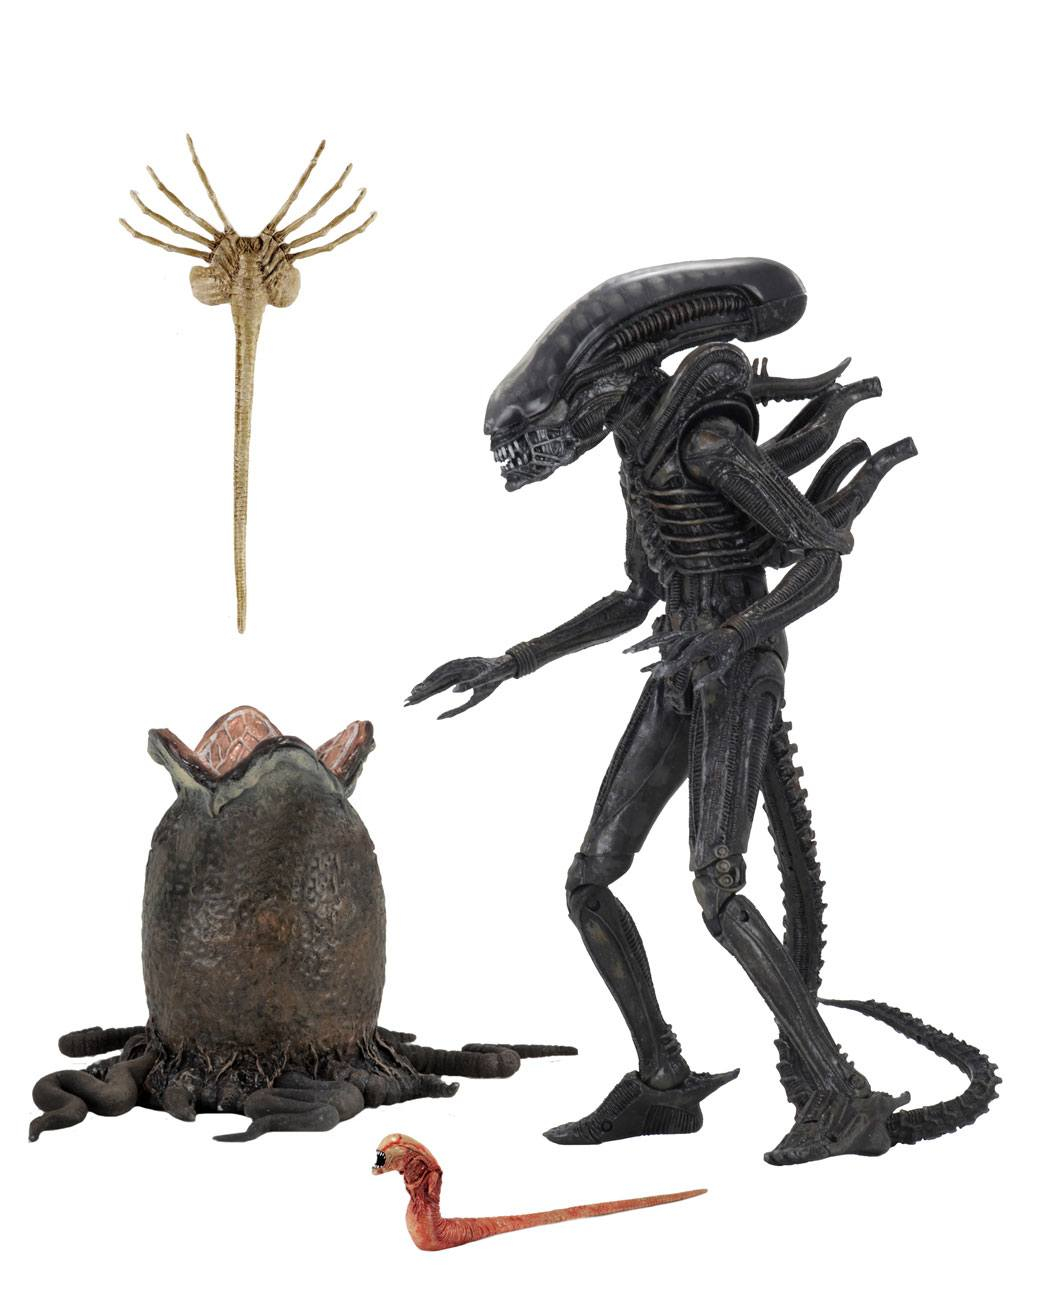 *PREORDER* Alien 1979 Action Figure: ULTIMATE 40th BIG CHAP by Neca